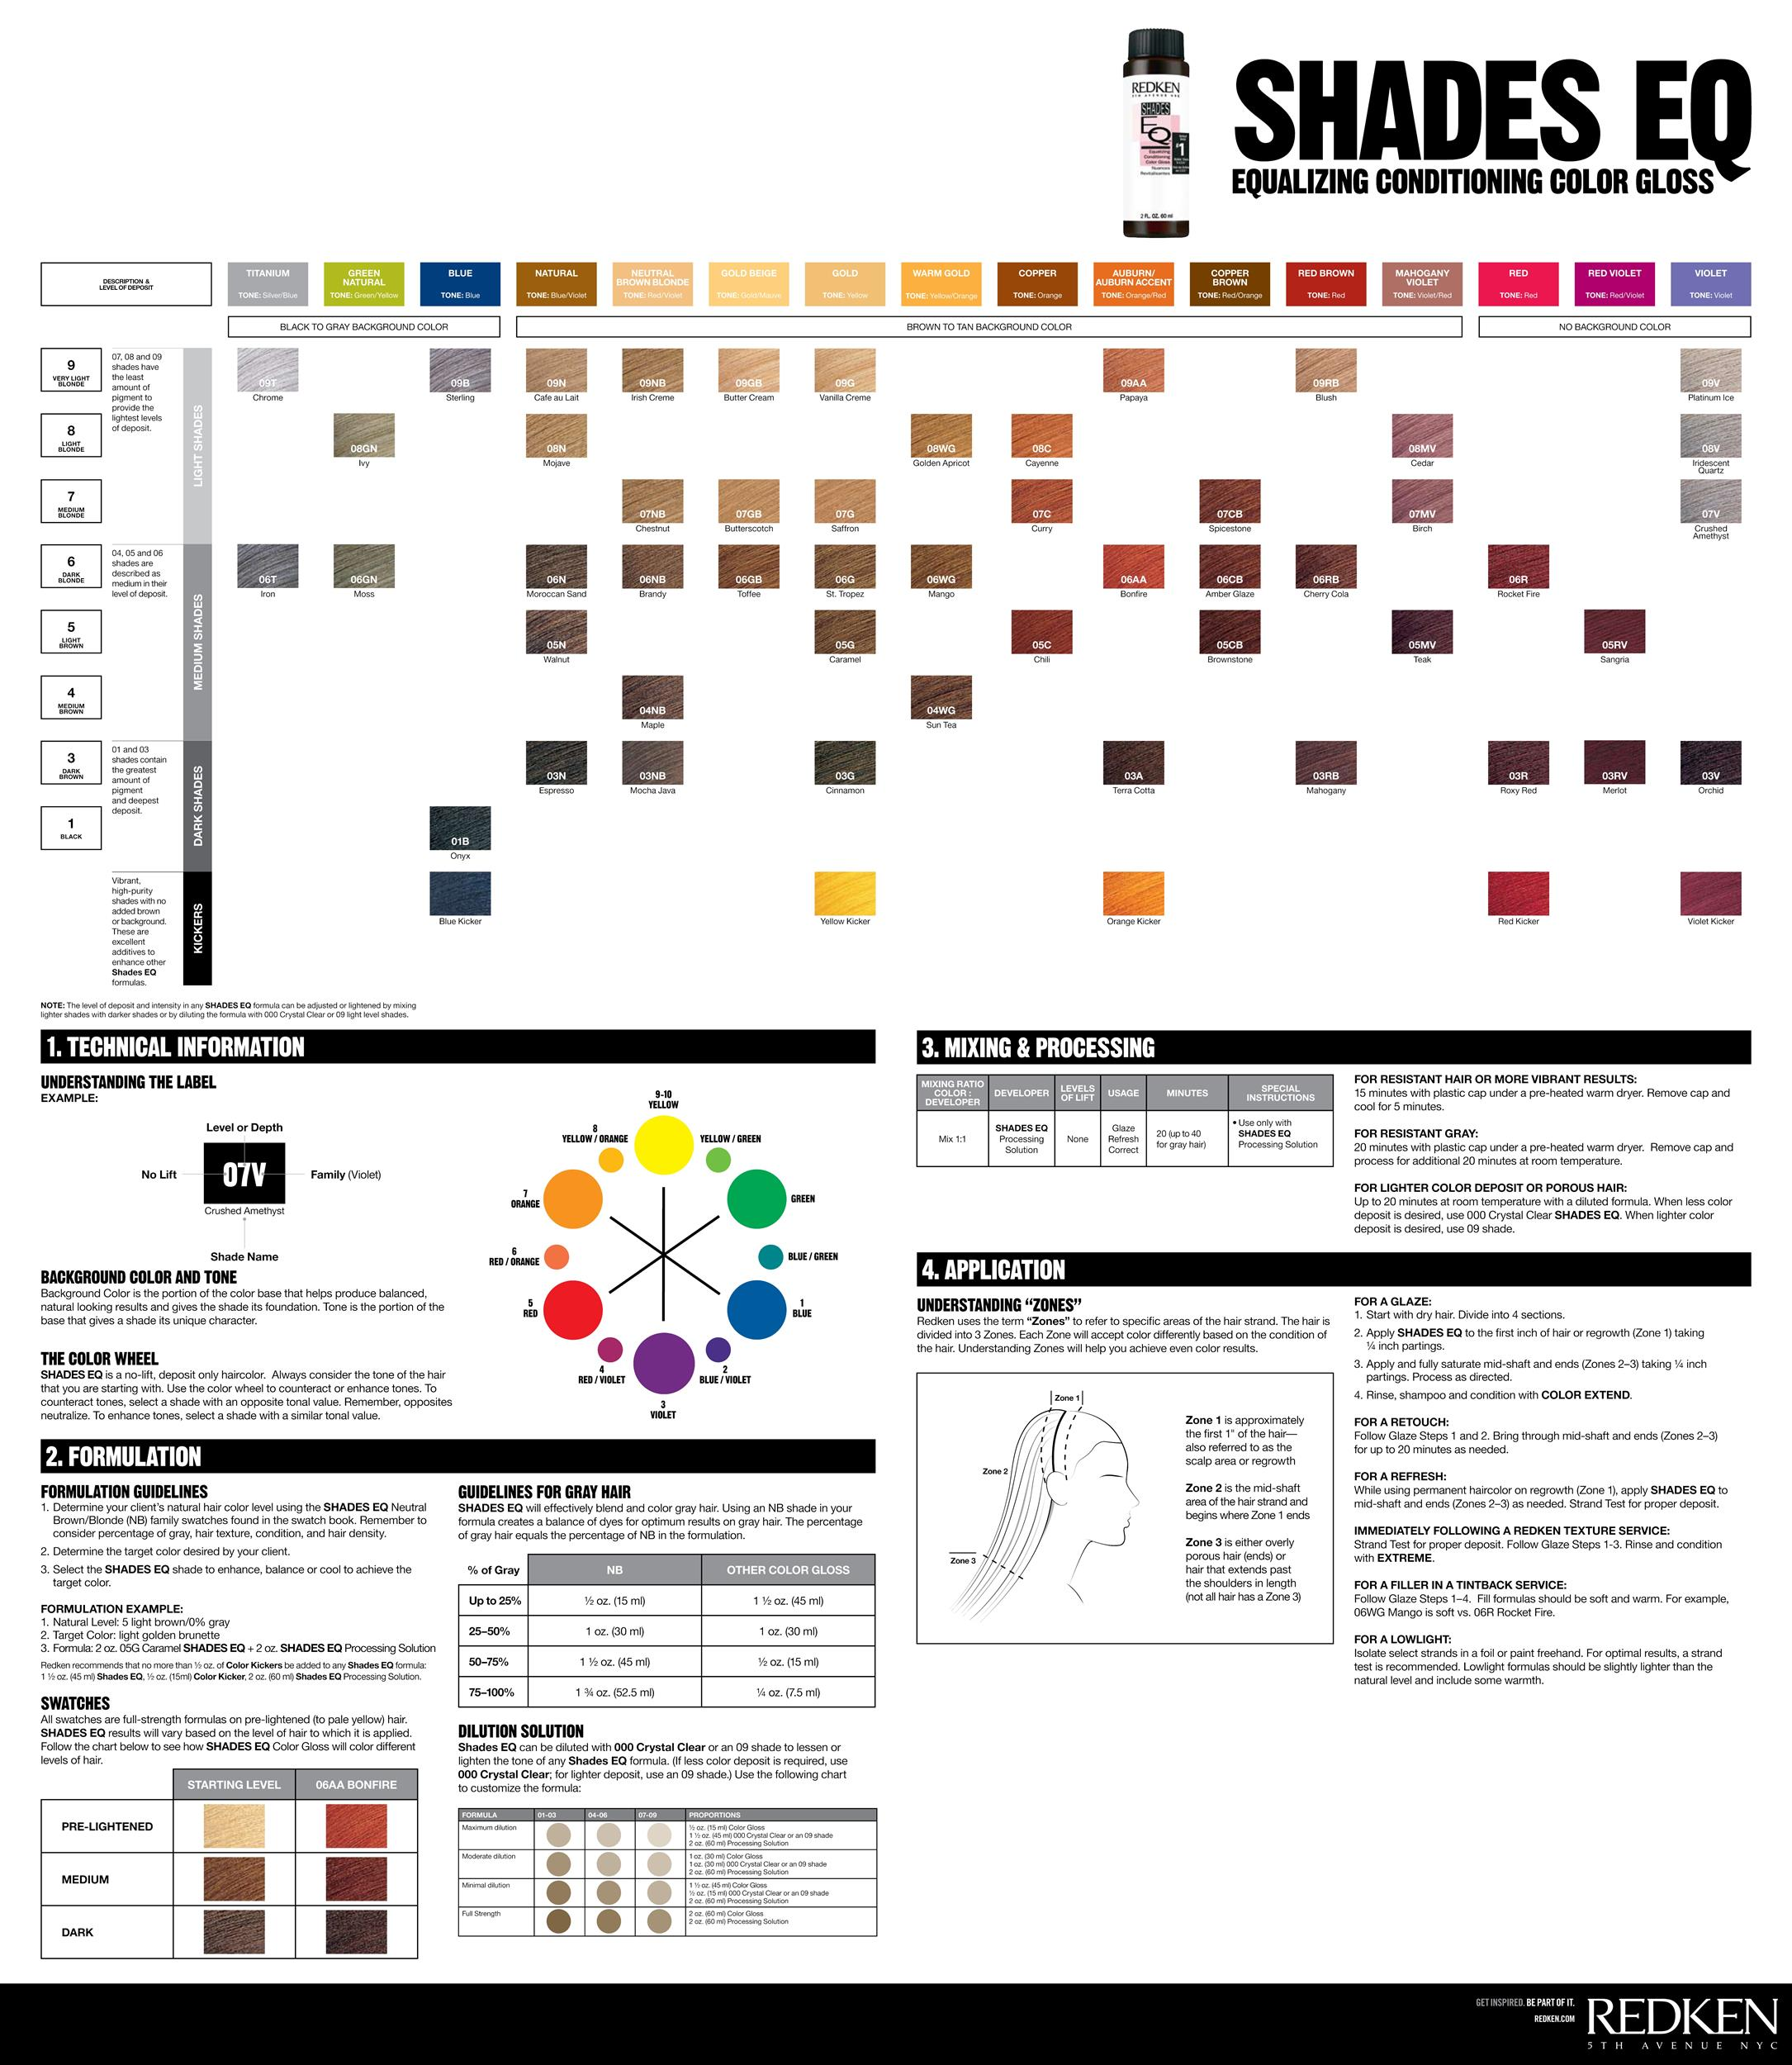 26 Redken Shades Eq Color Charts ᐅ Templatelab